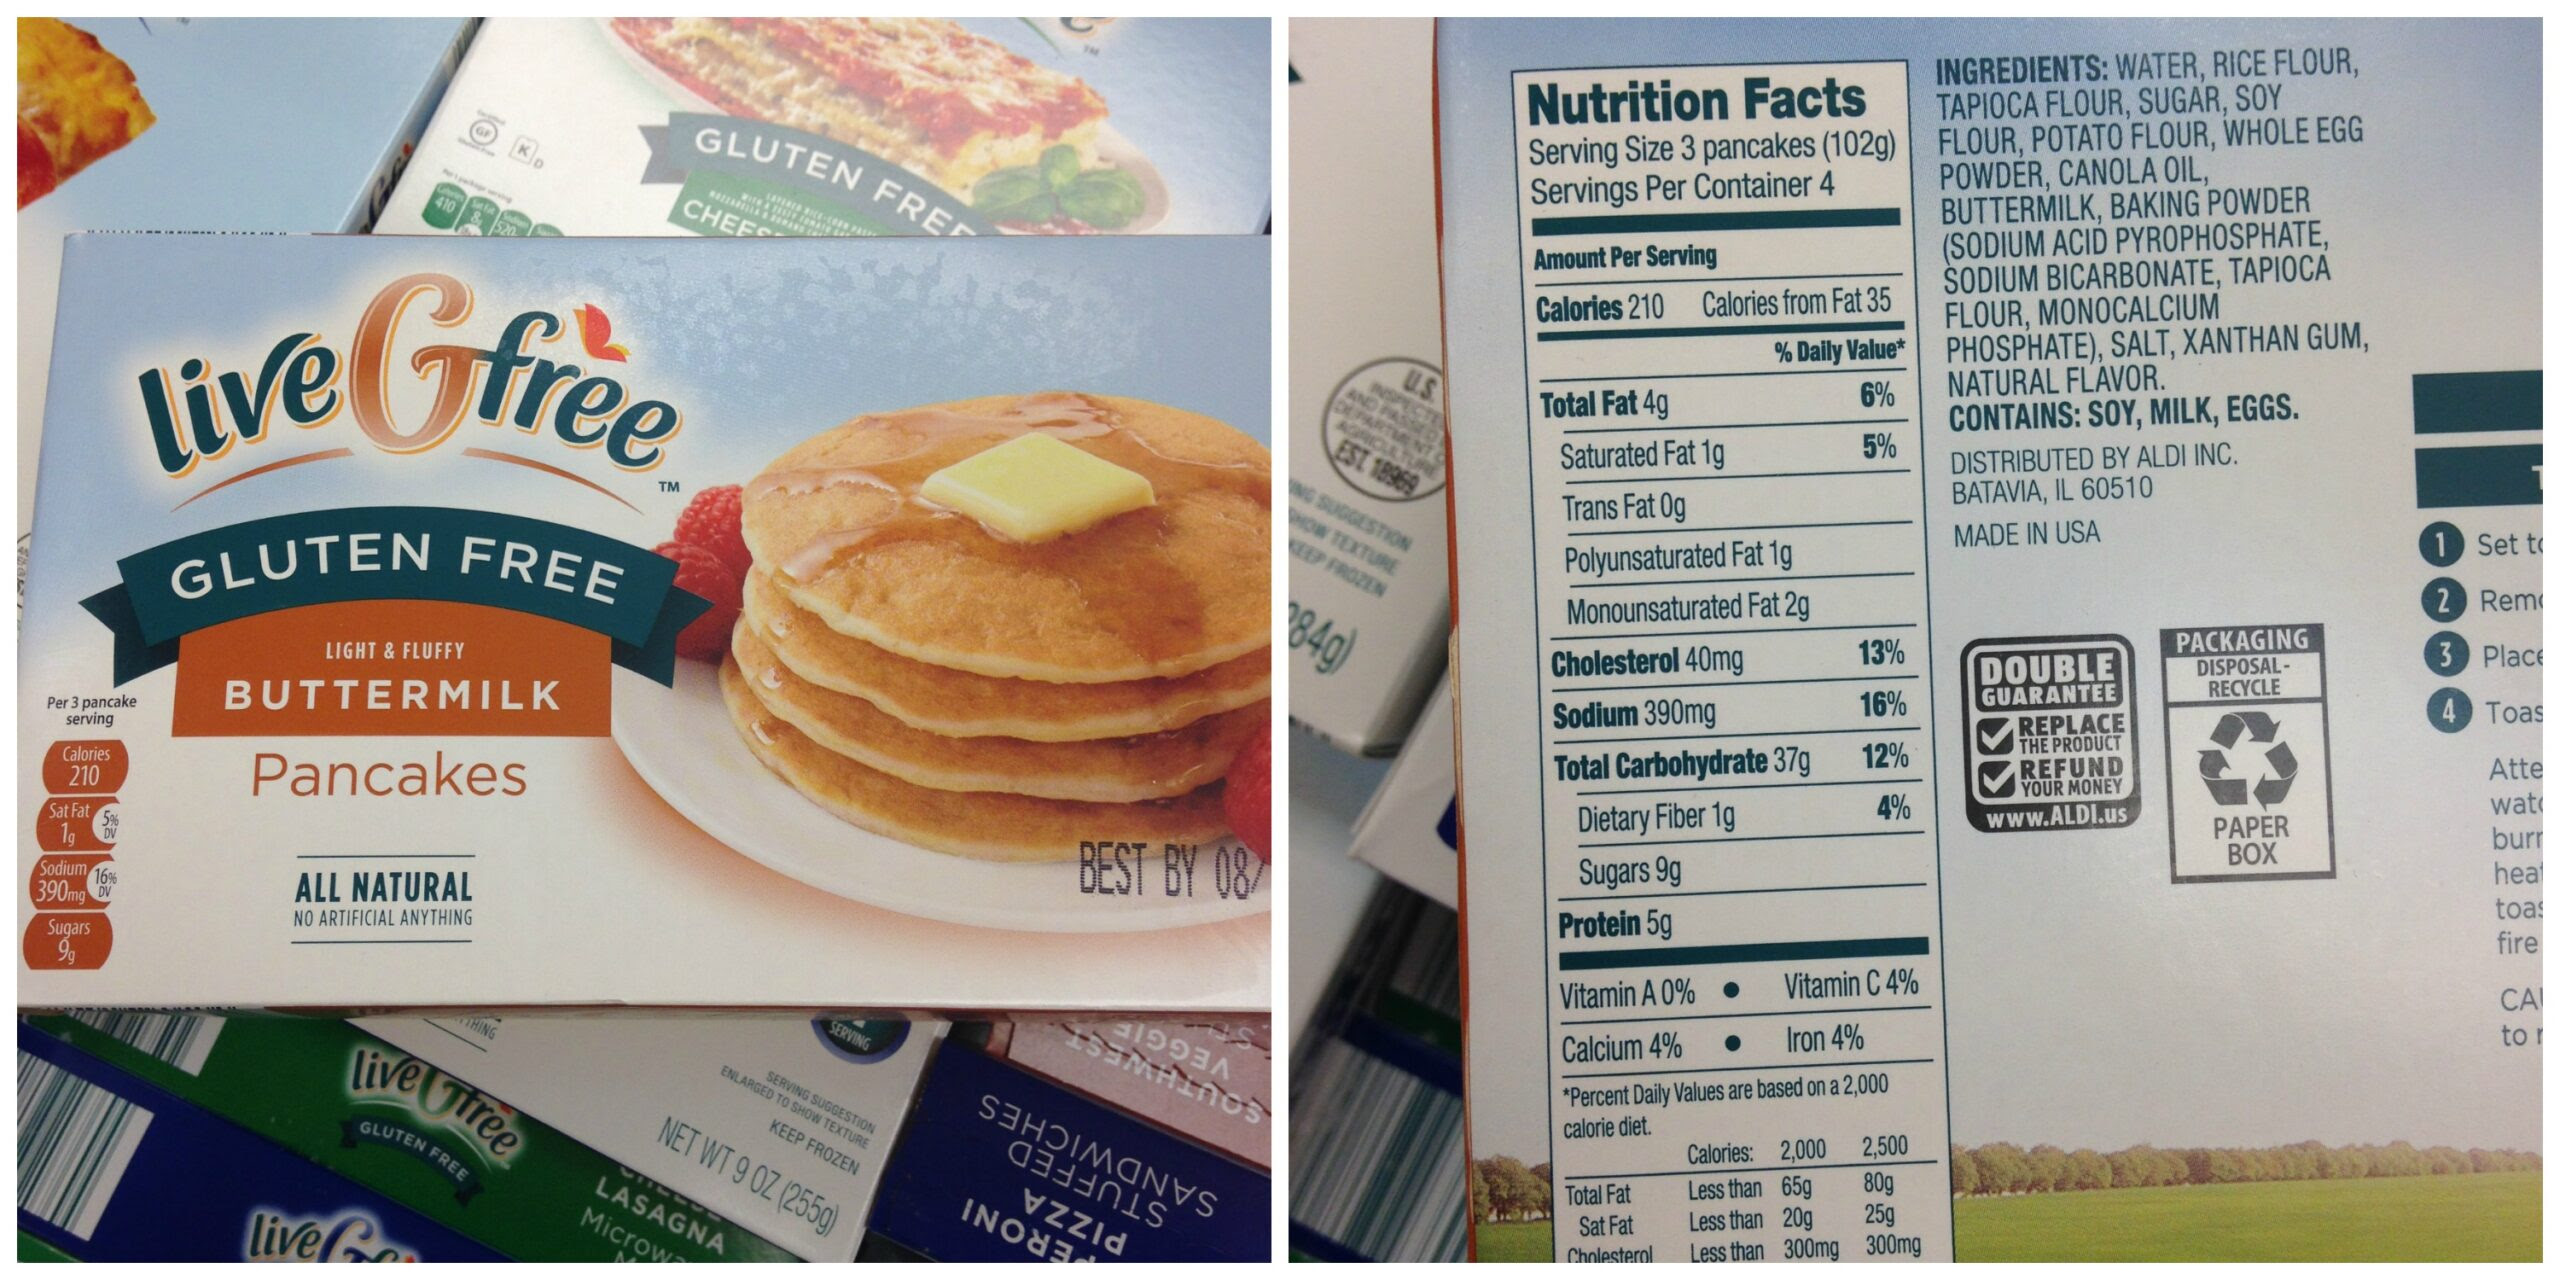 Are There Gluten Free Pancakes At Ihop